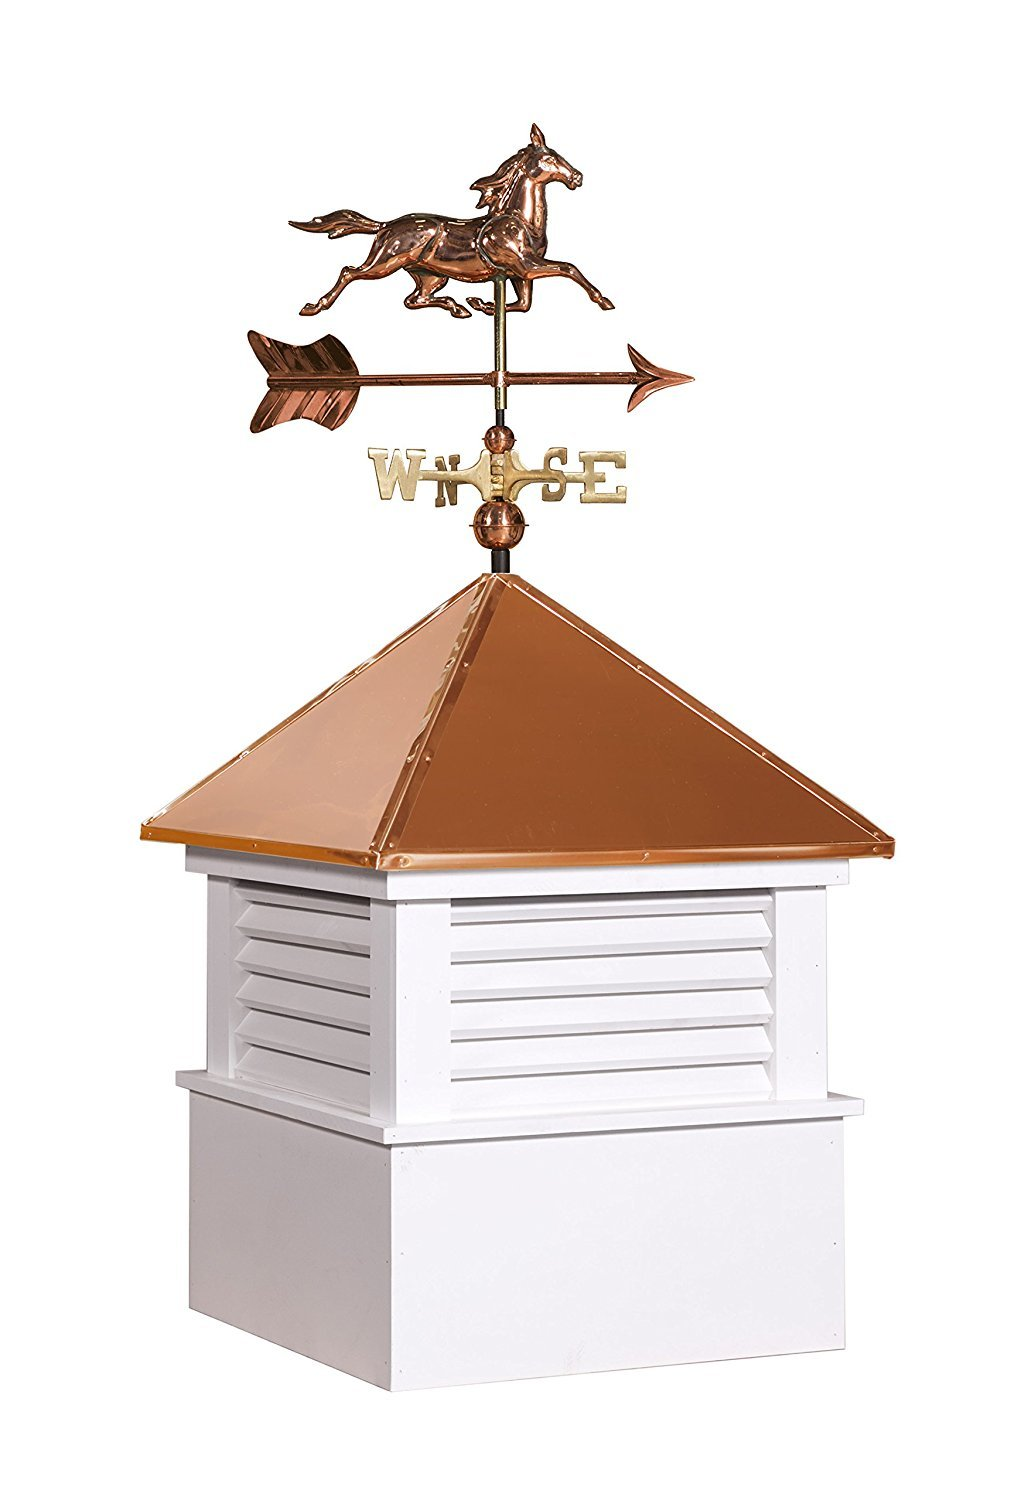 East Coast Weathervanes and Cupolas Vinyl Douglas Cupola With Horse Weathervane (Vinyl, 25 in square x 51 in tall)